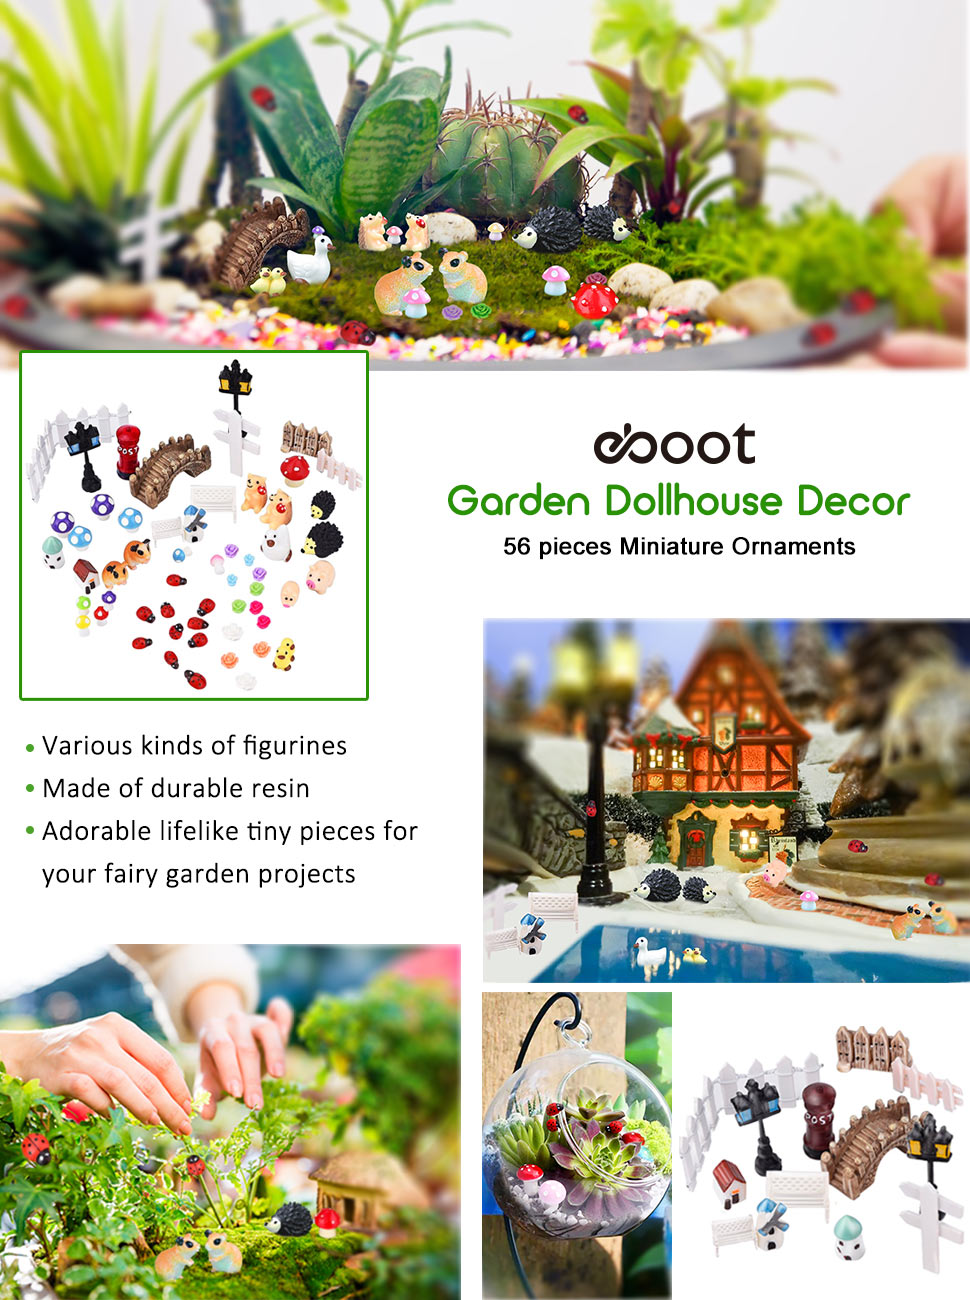 Miniature ornaments - These 56 Pieces Mini Fairy Ornaments Are Suitable For Diy Decoration Of Mini Garden Views Mini Landscaping Dollhouse And Plant Decoration